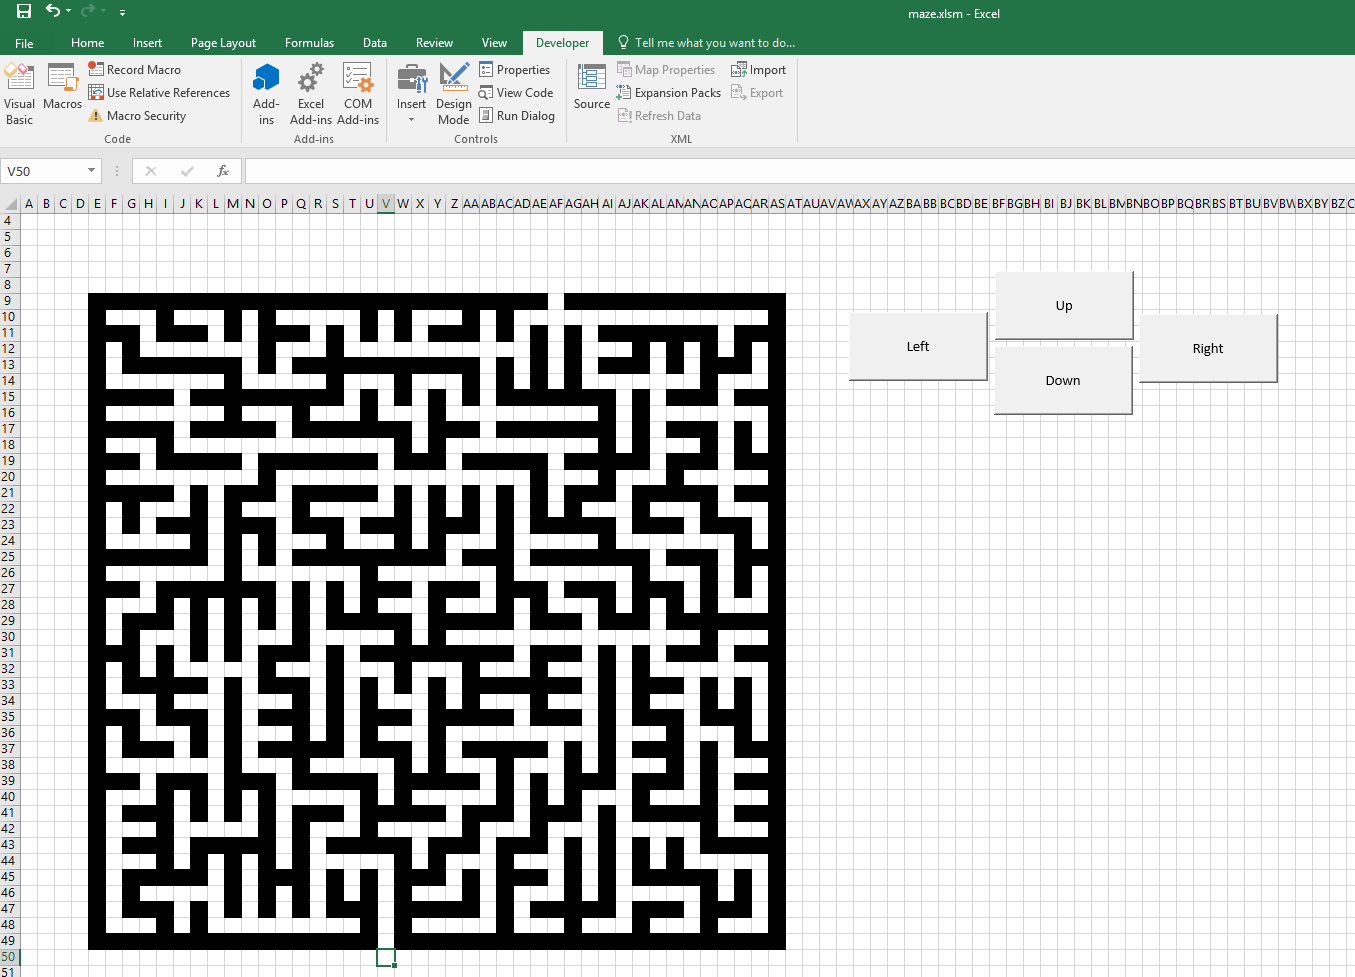 Excel Vba Playable Maze Making Cells Interpret As Walls